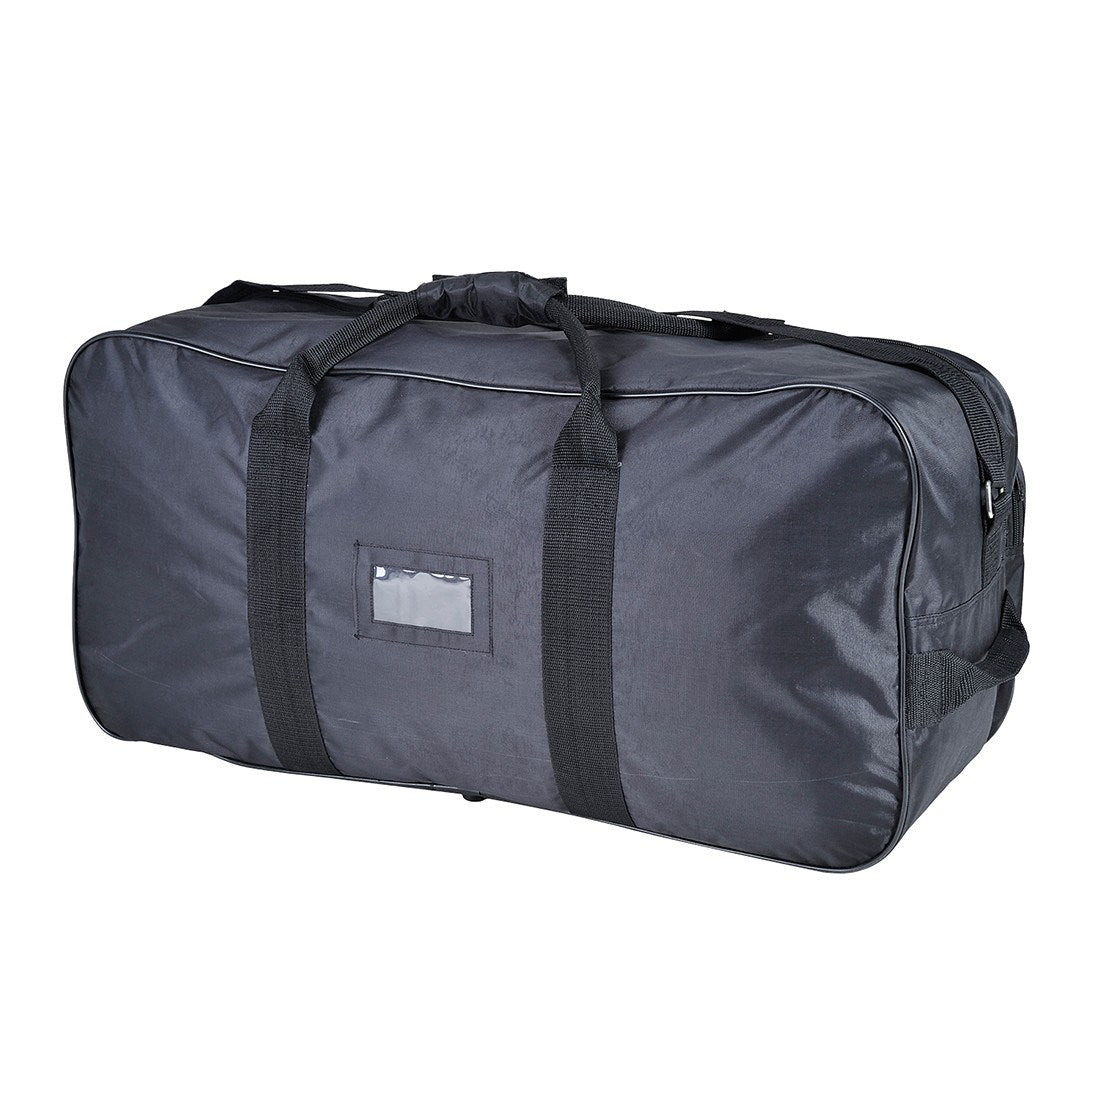 port-west-holdall-tool-travel-bag-b-900-navy